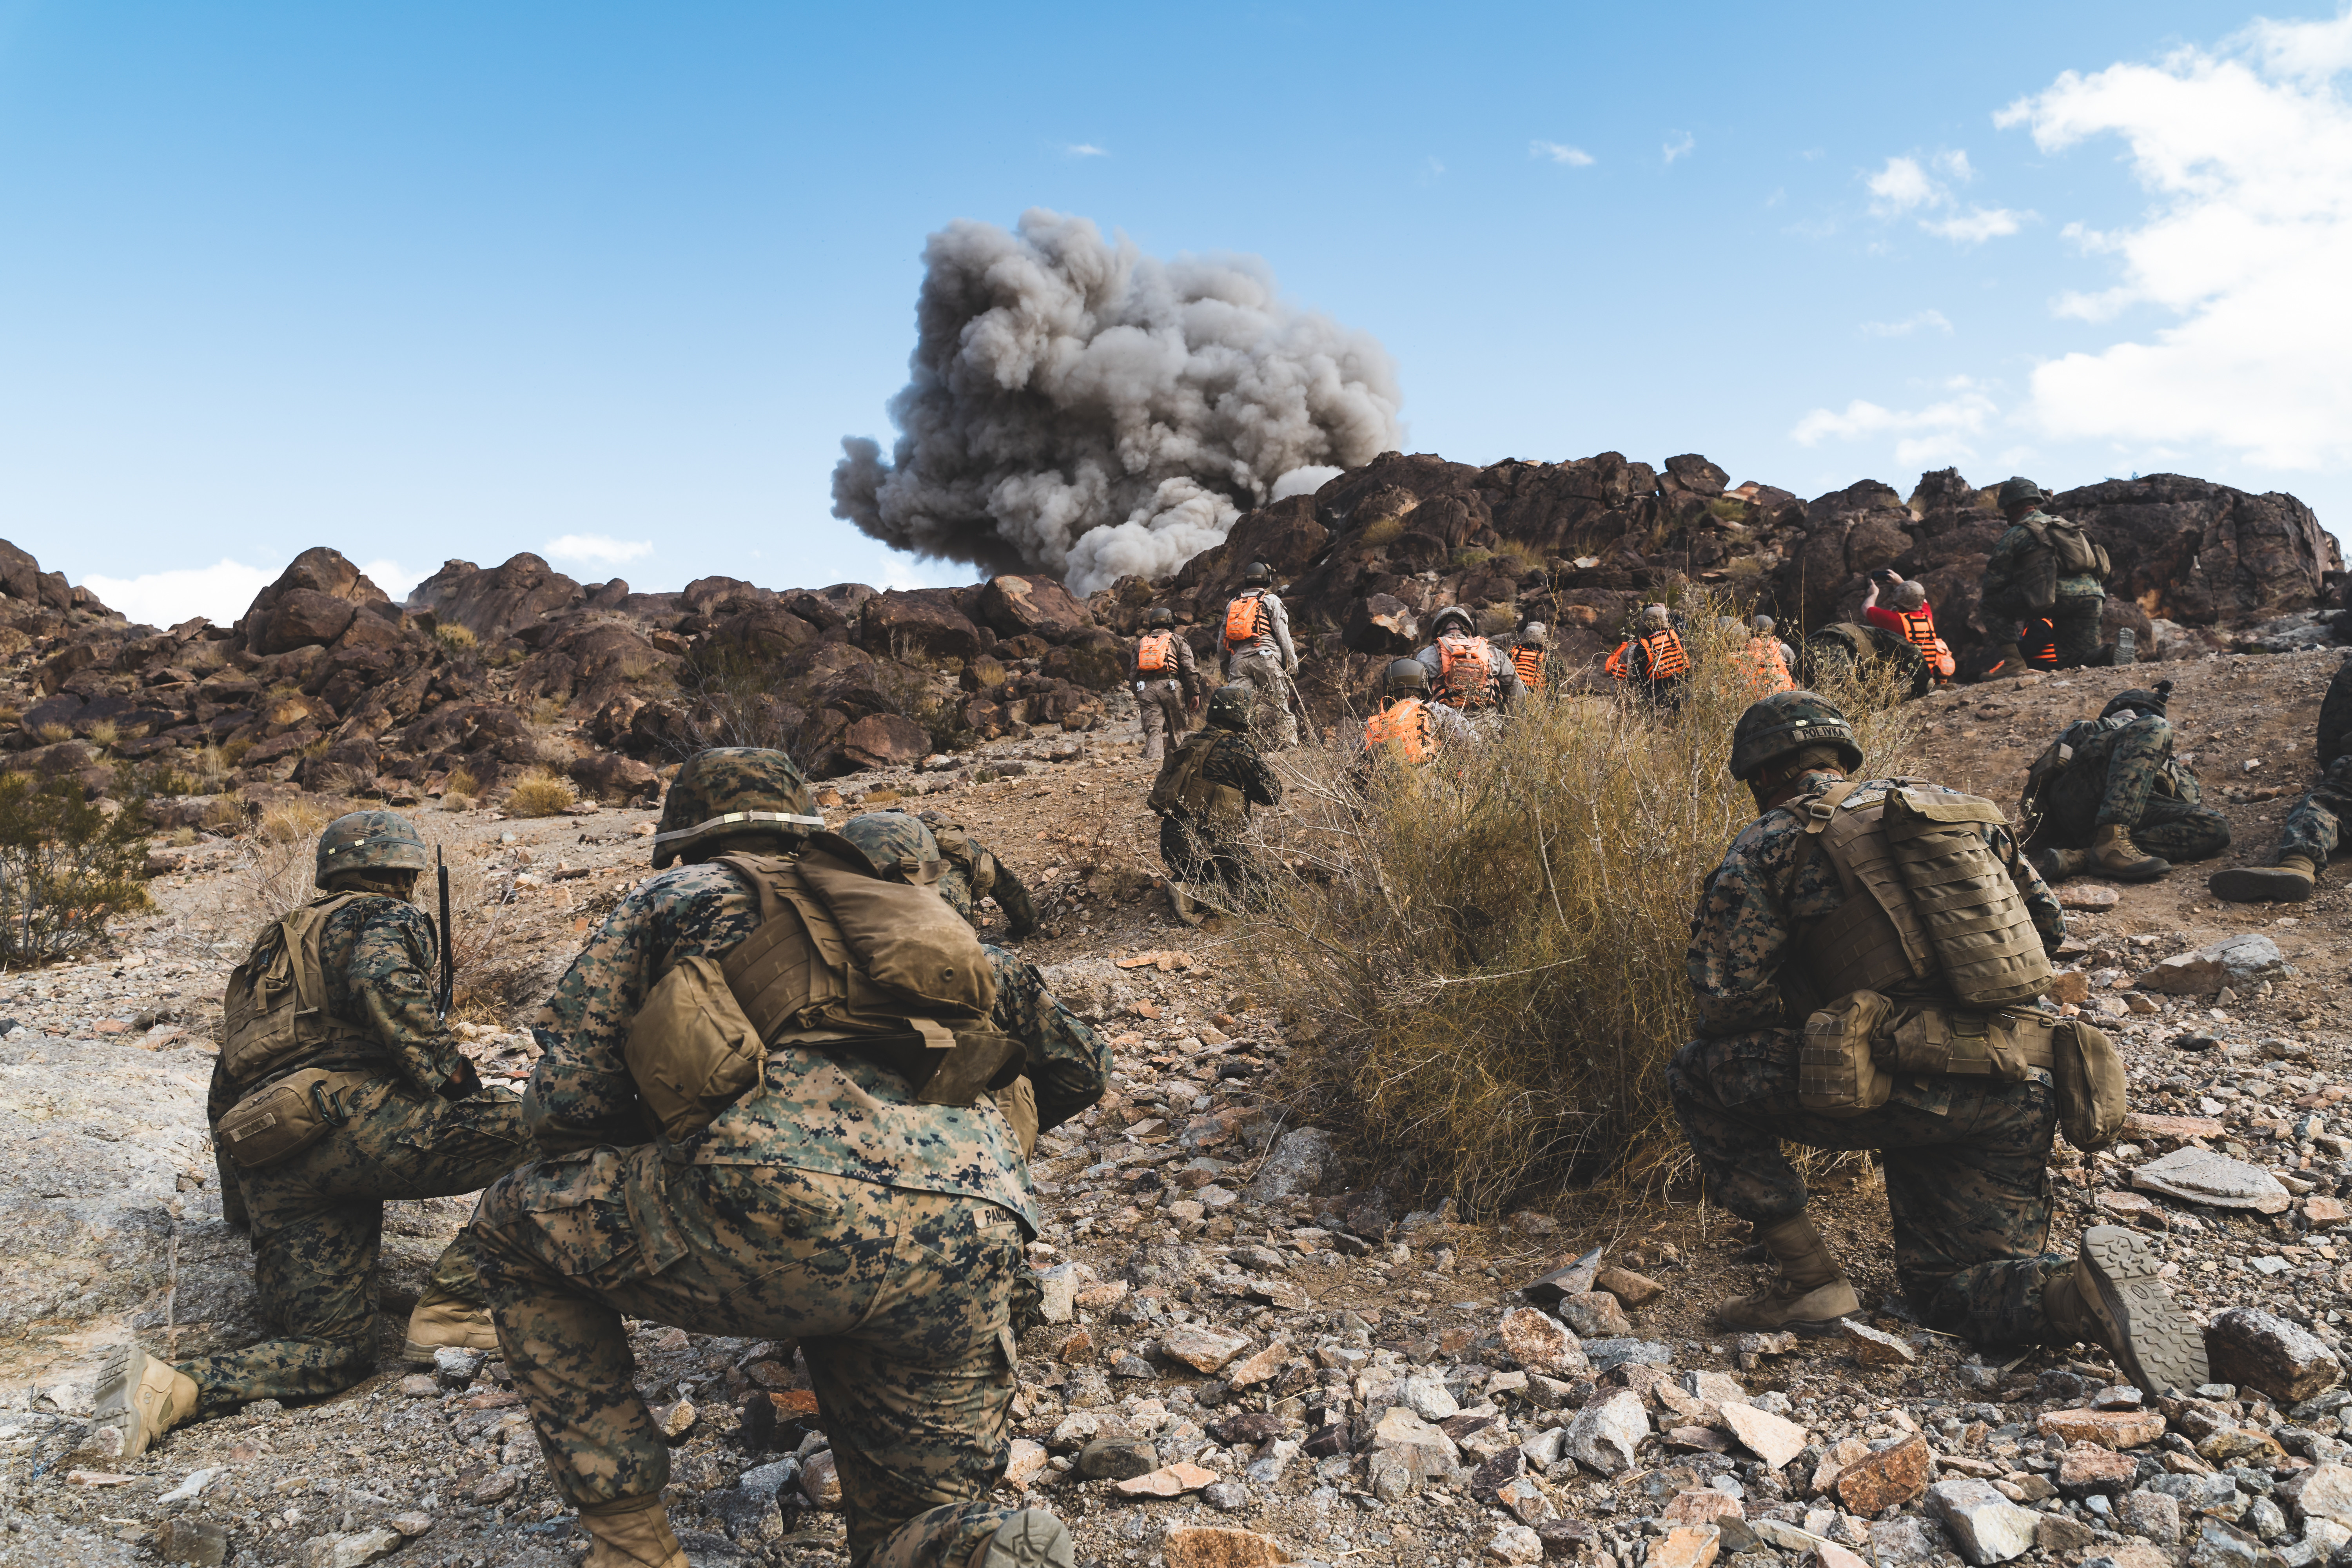 U.S. Marines detonate obstacle-breaching Bangalore torpedoes during a live-fire and maneuver exercise at the company assault course, Range 400, Marine Corps Air Ground Combat Center, Twentynine Palms, Calif., Nov. 20, 2019. (Lance Cpl. Colton Brownlee/Marine Corps)